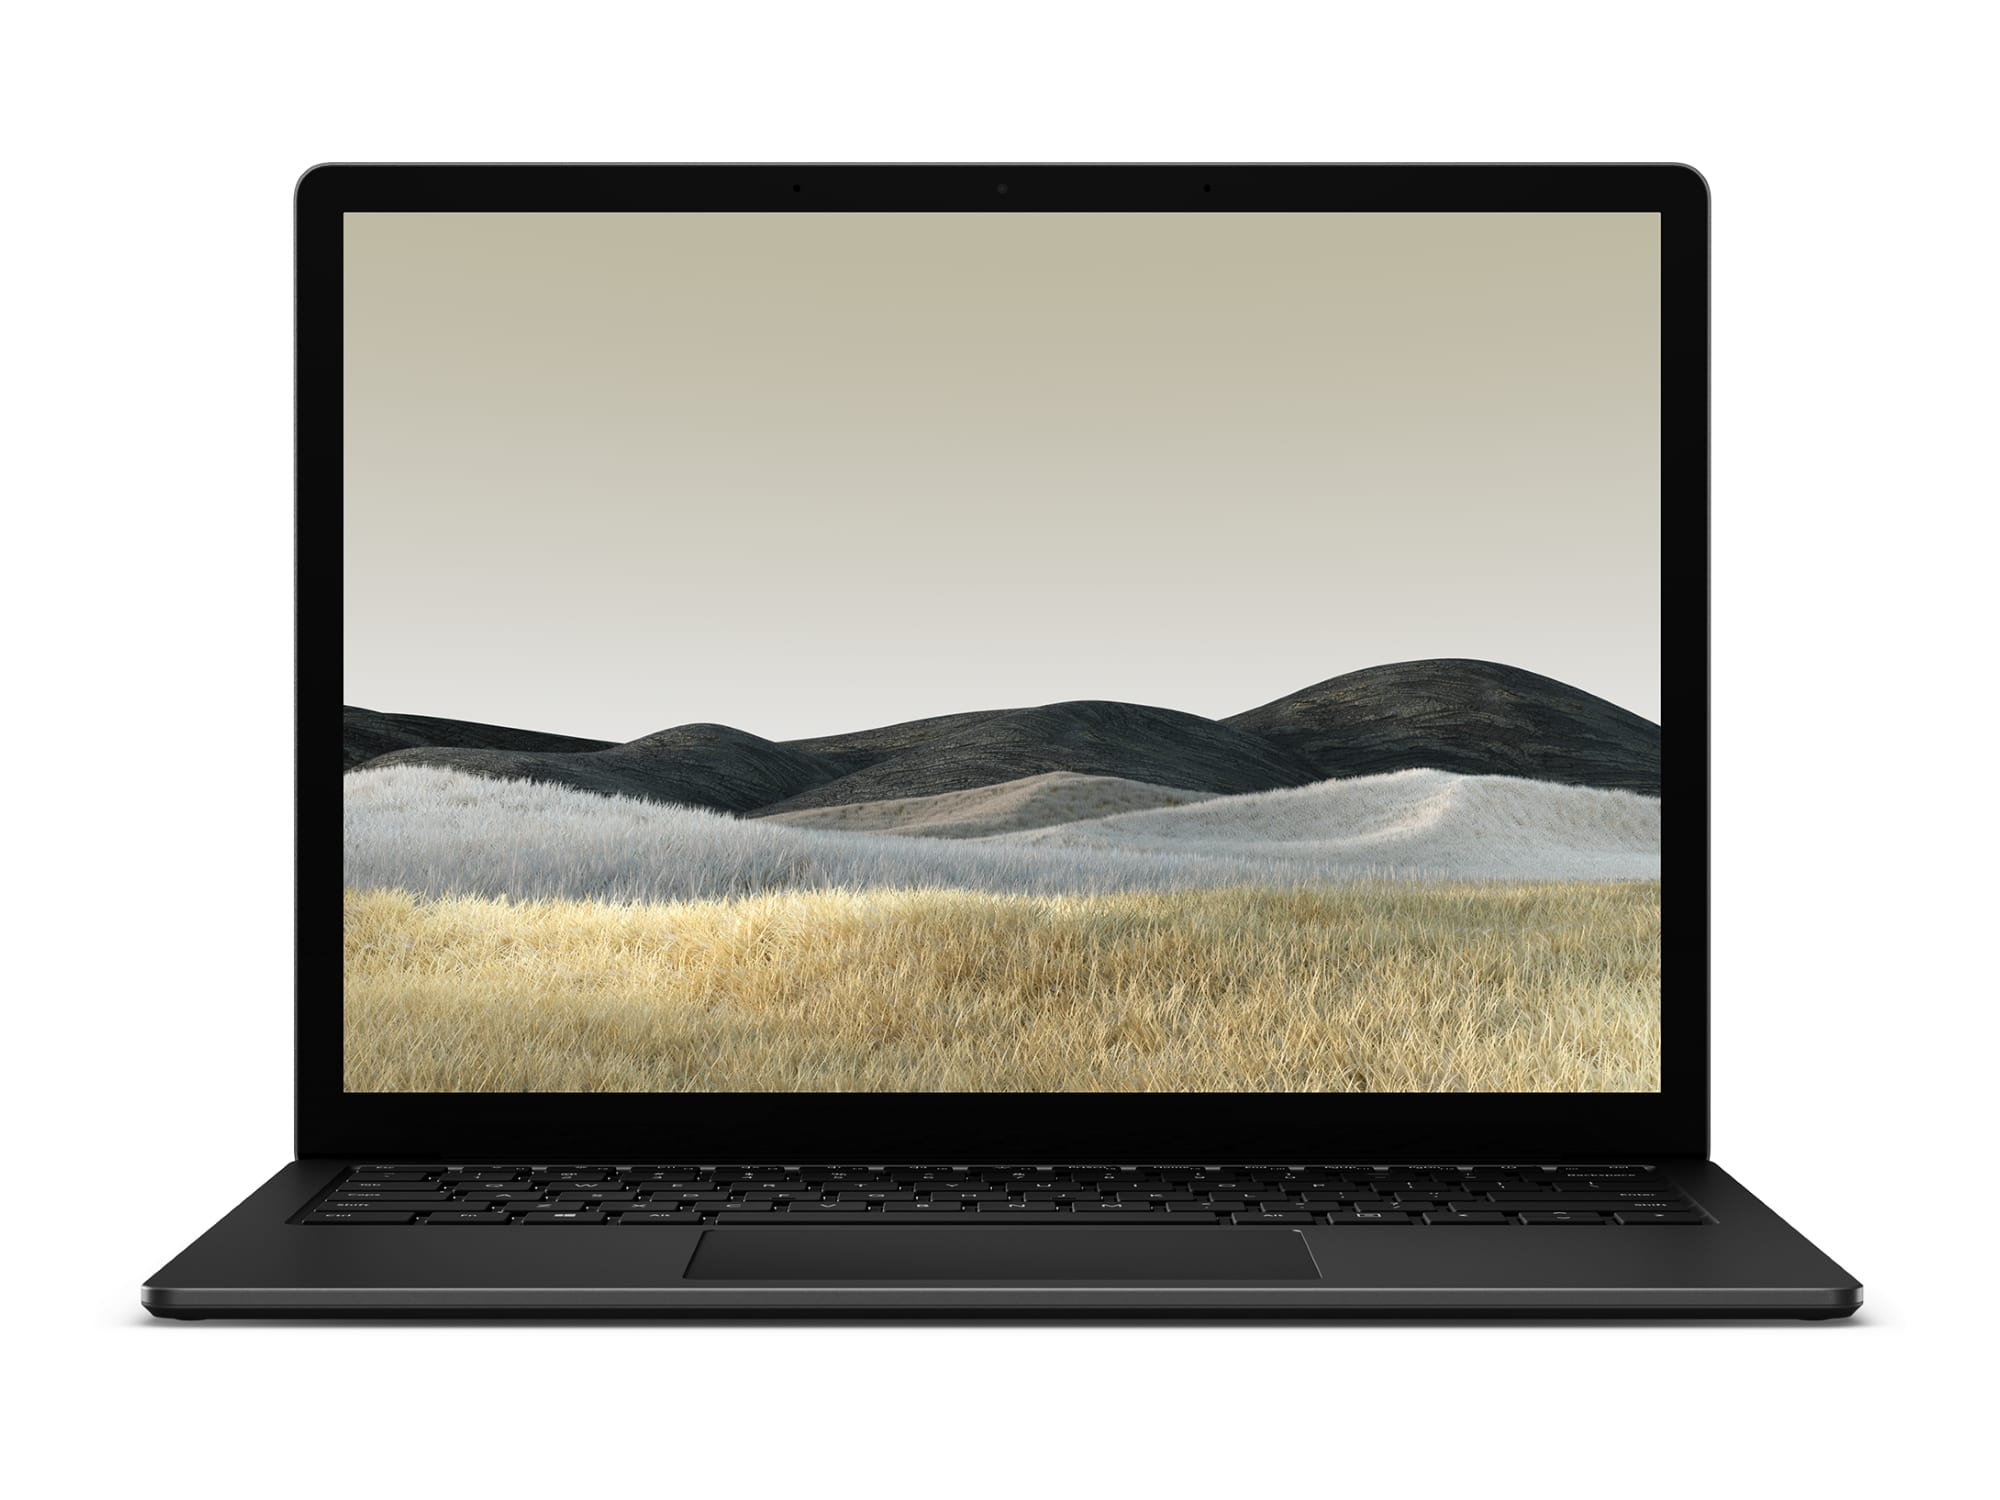 Microsoft Surface Laptop 3 Notebook 34,3 cm (13.5 Zoll) 8 GB Ram 256 GB SSD Windows 10 Home für 1.449,00 Euro